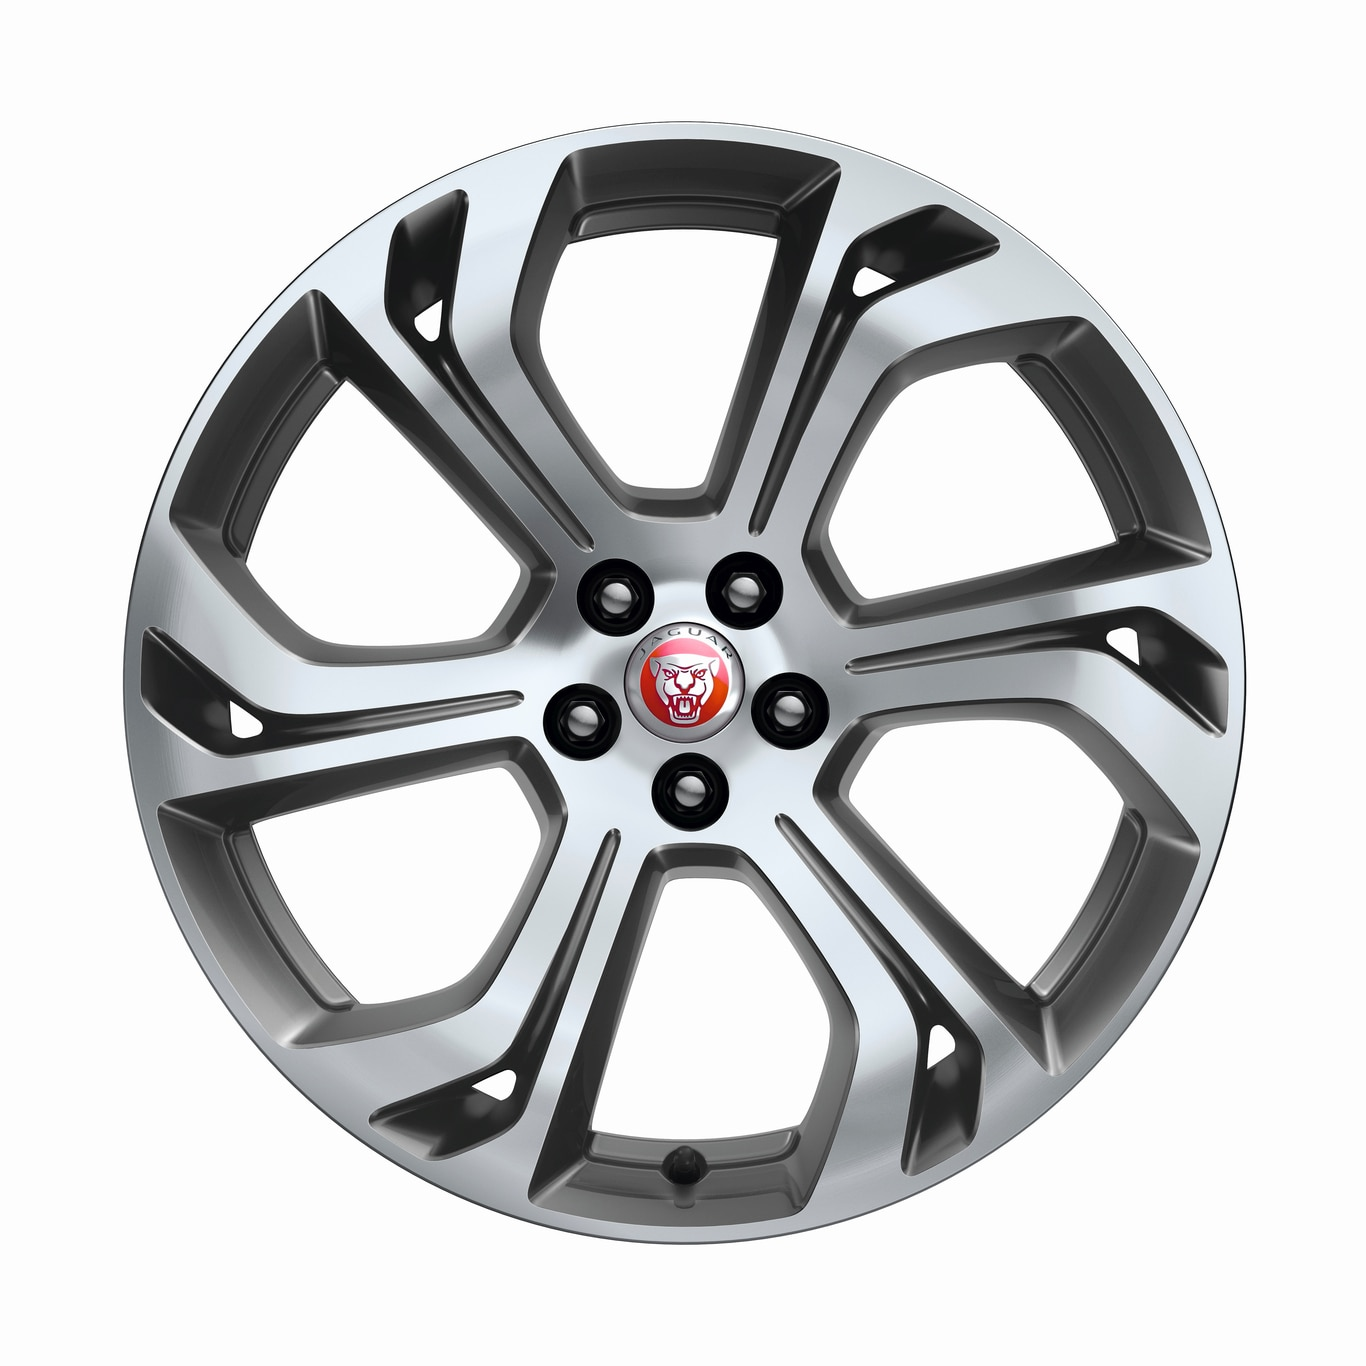 "Llantas de Aleación - 20"" 6 Split-Spoke, 'Style 6014', with Satin Grey Diamond Turned finish"